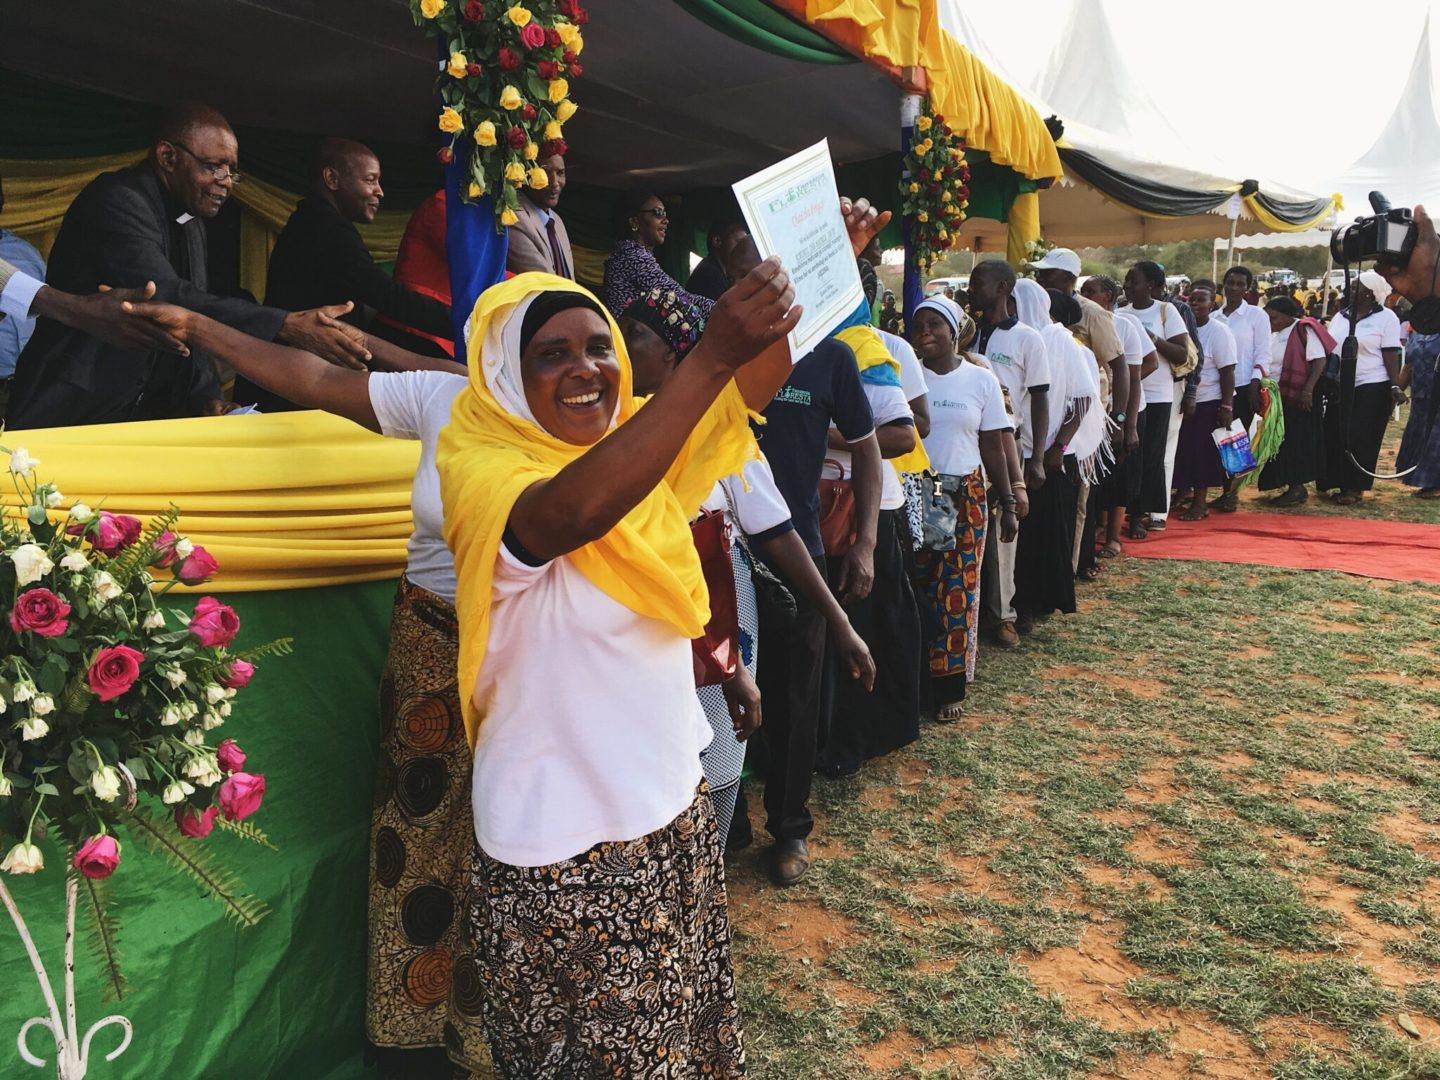 Communities in Tanzania celebrate trees planted